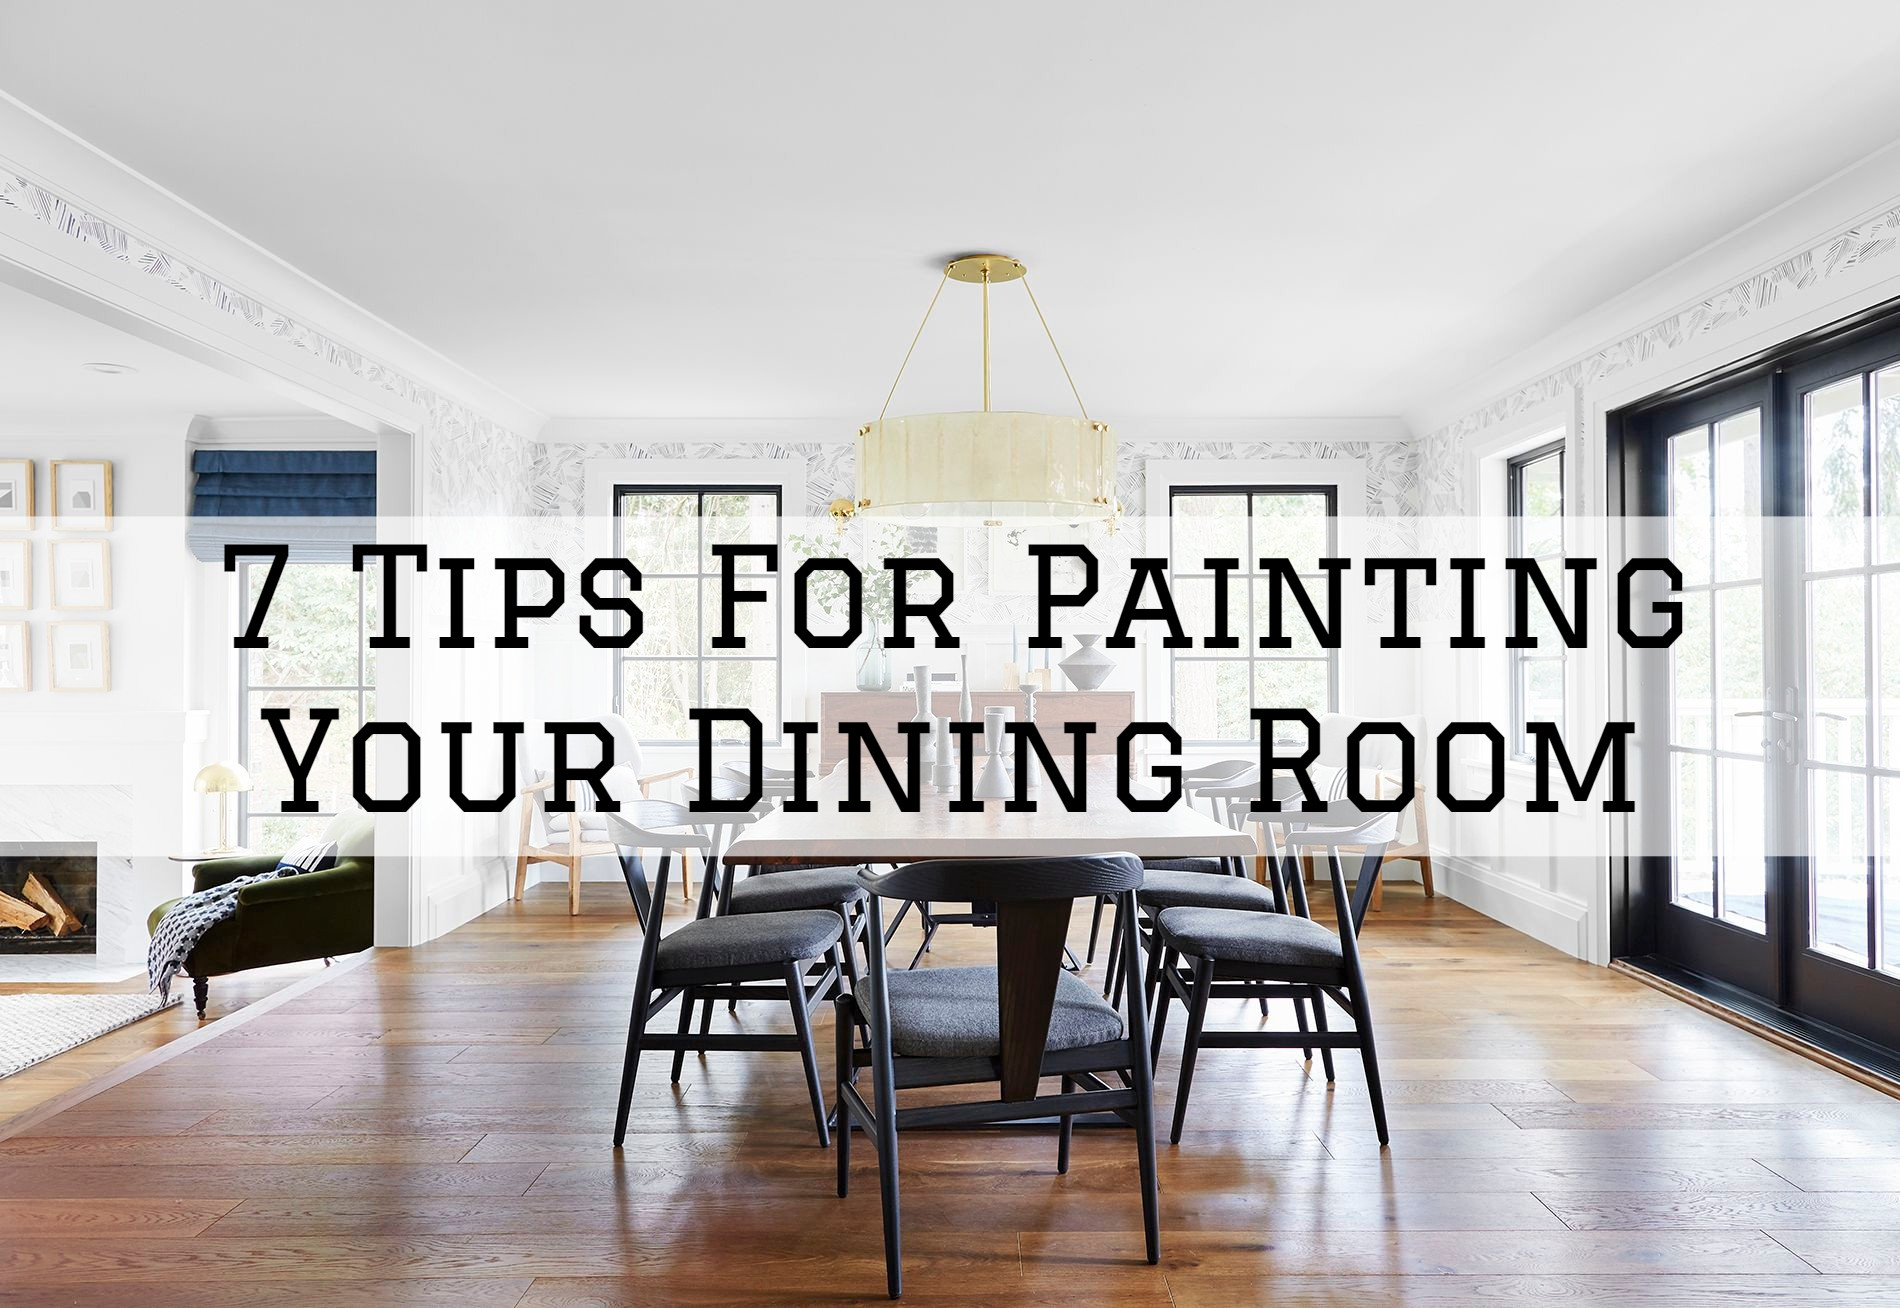 07-07-2021 Steves Quality Painting And Washing Princeton WI tips for painting your dining room